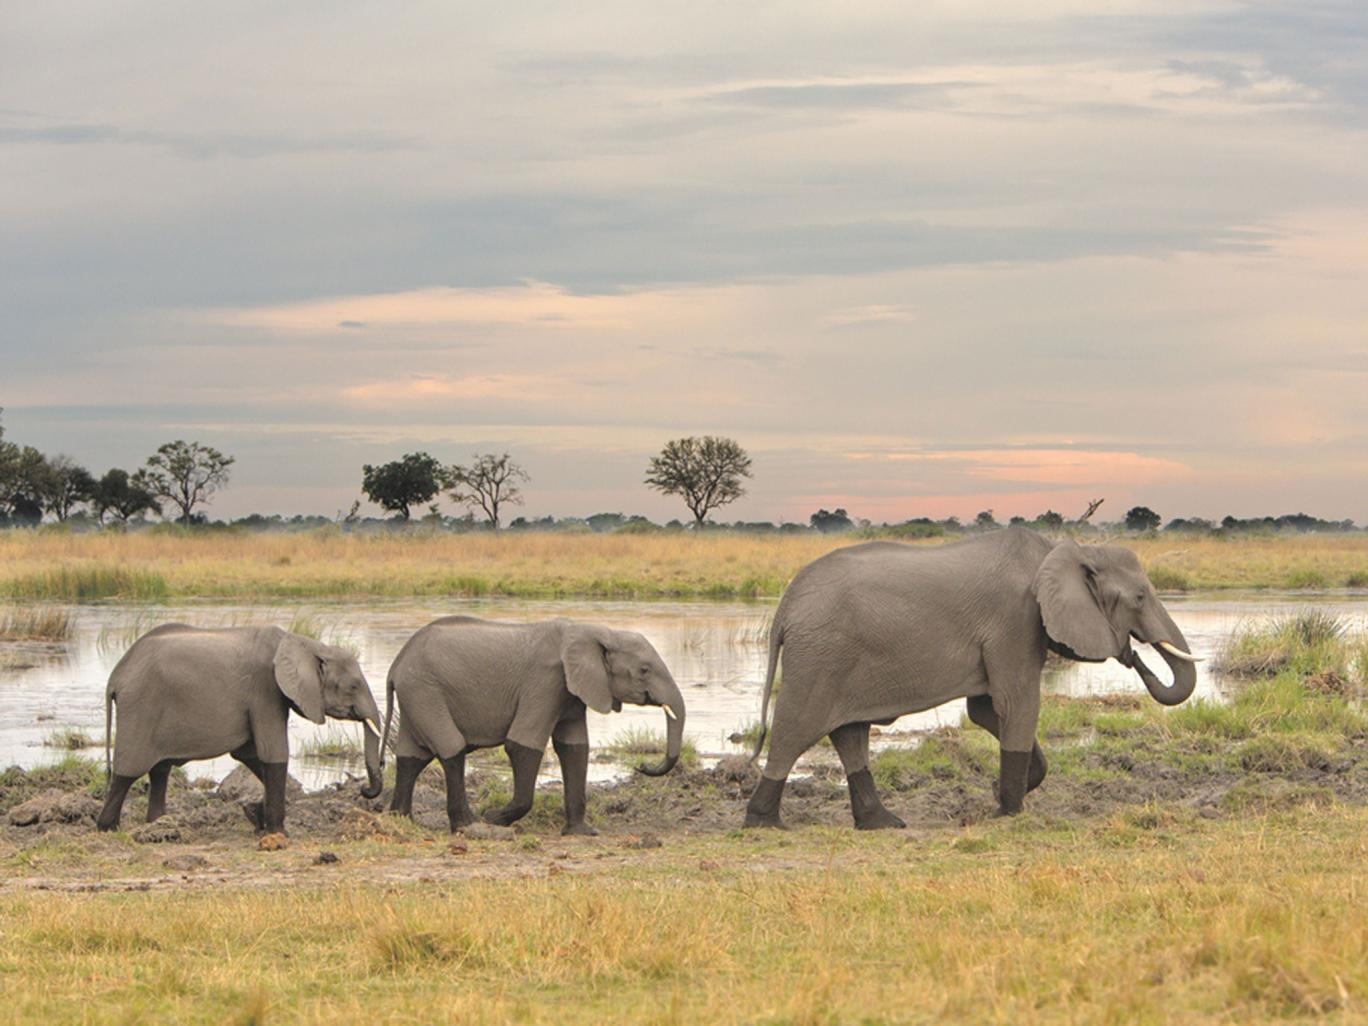 Botswana tops Lonely Planet's list of best places to visit in 2016